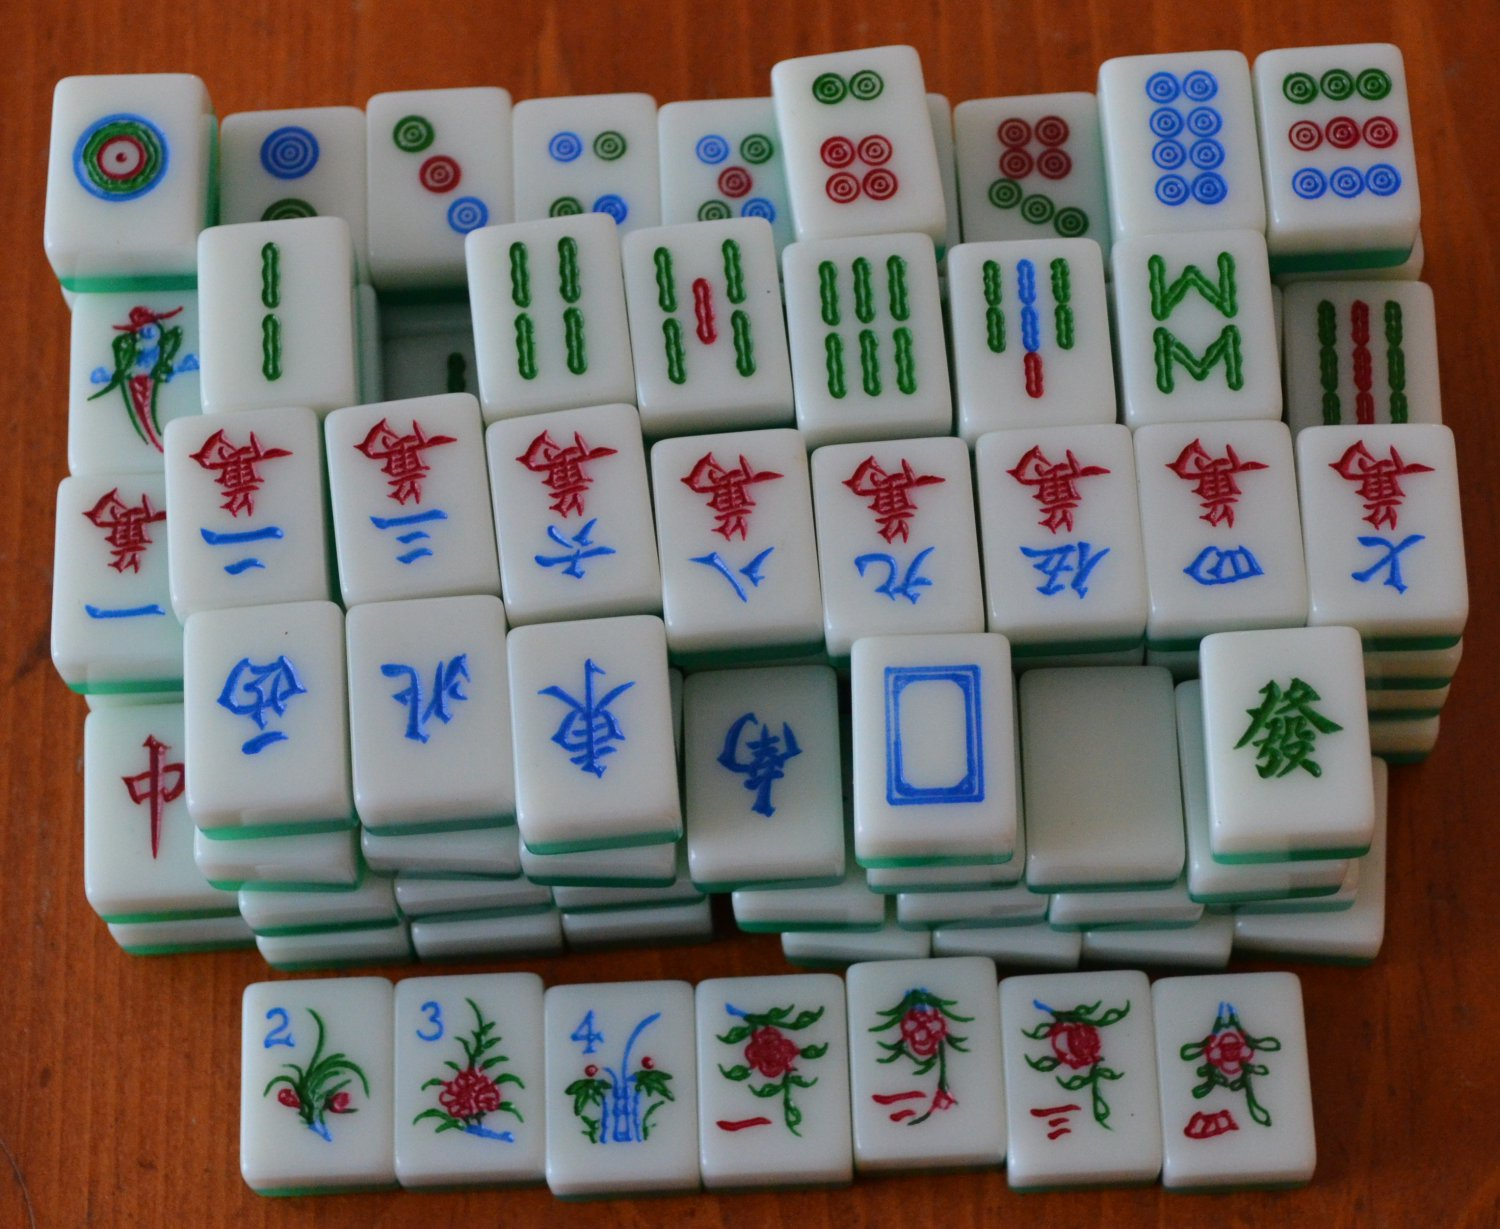 Lot Mah Jong Tiles Green White 133 Pieces Small 7/8in Crafts Arts